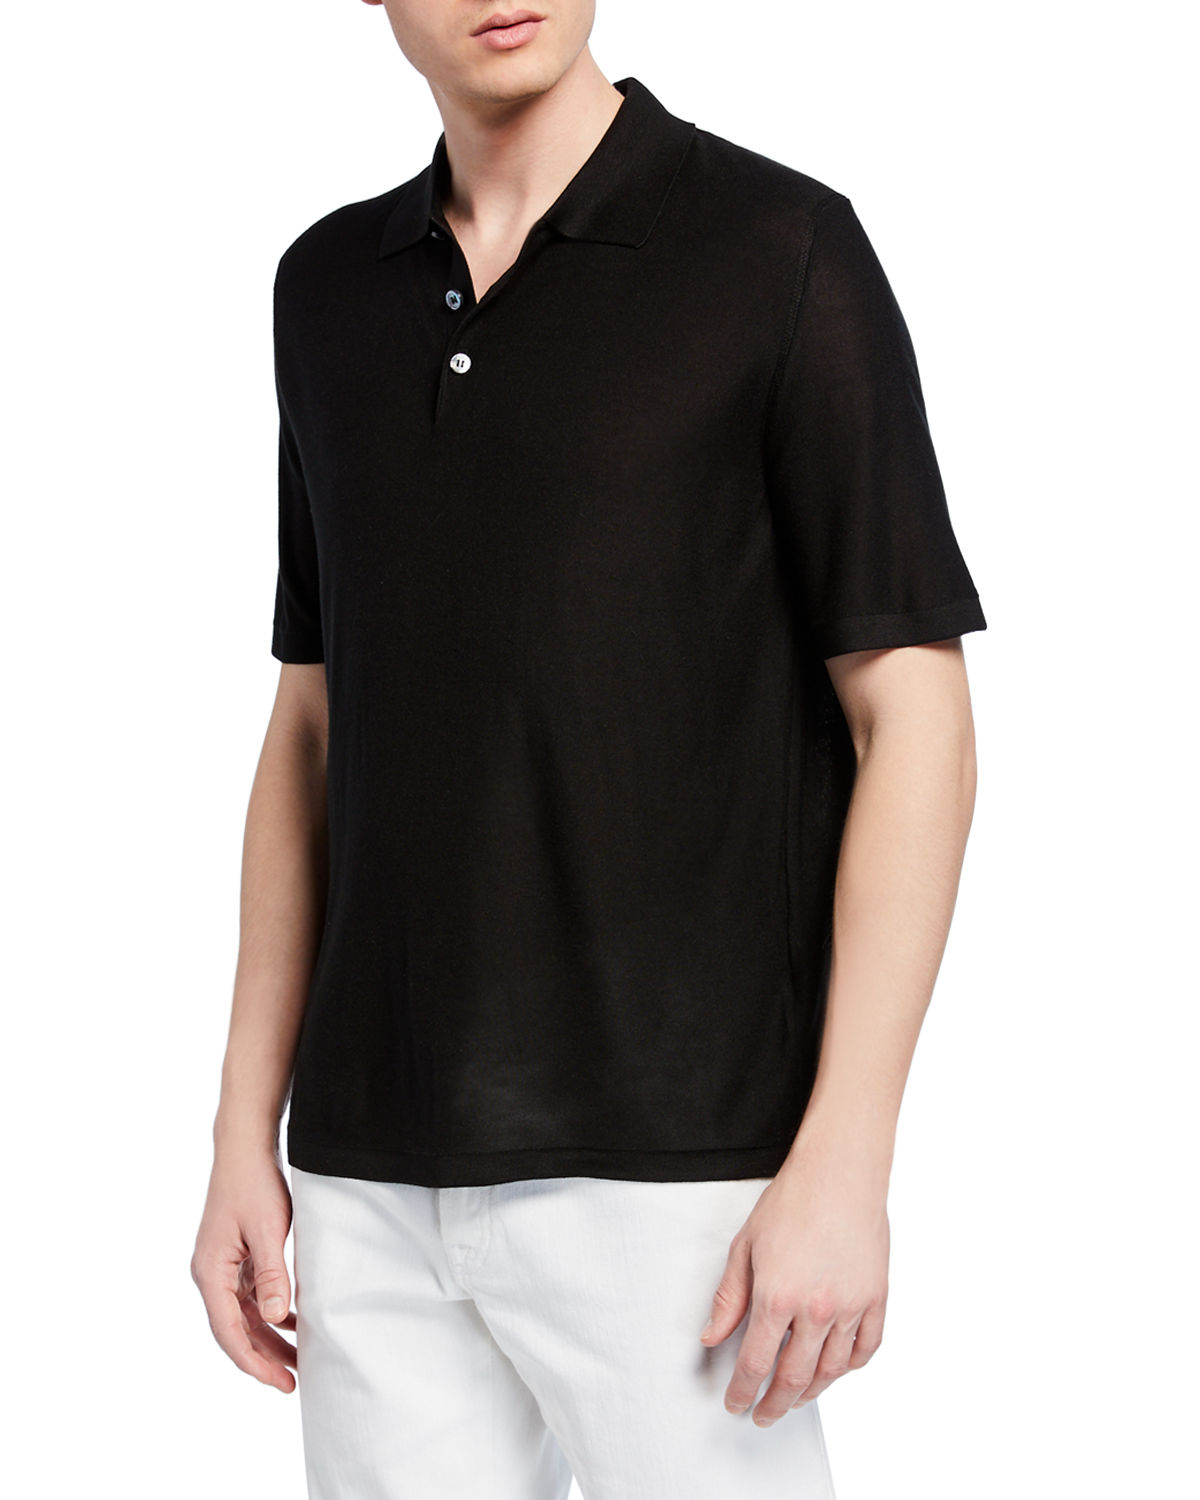 Brioni T-shirts MEN'S SILK POLO SHIRT